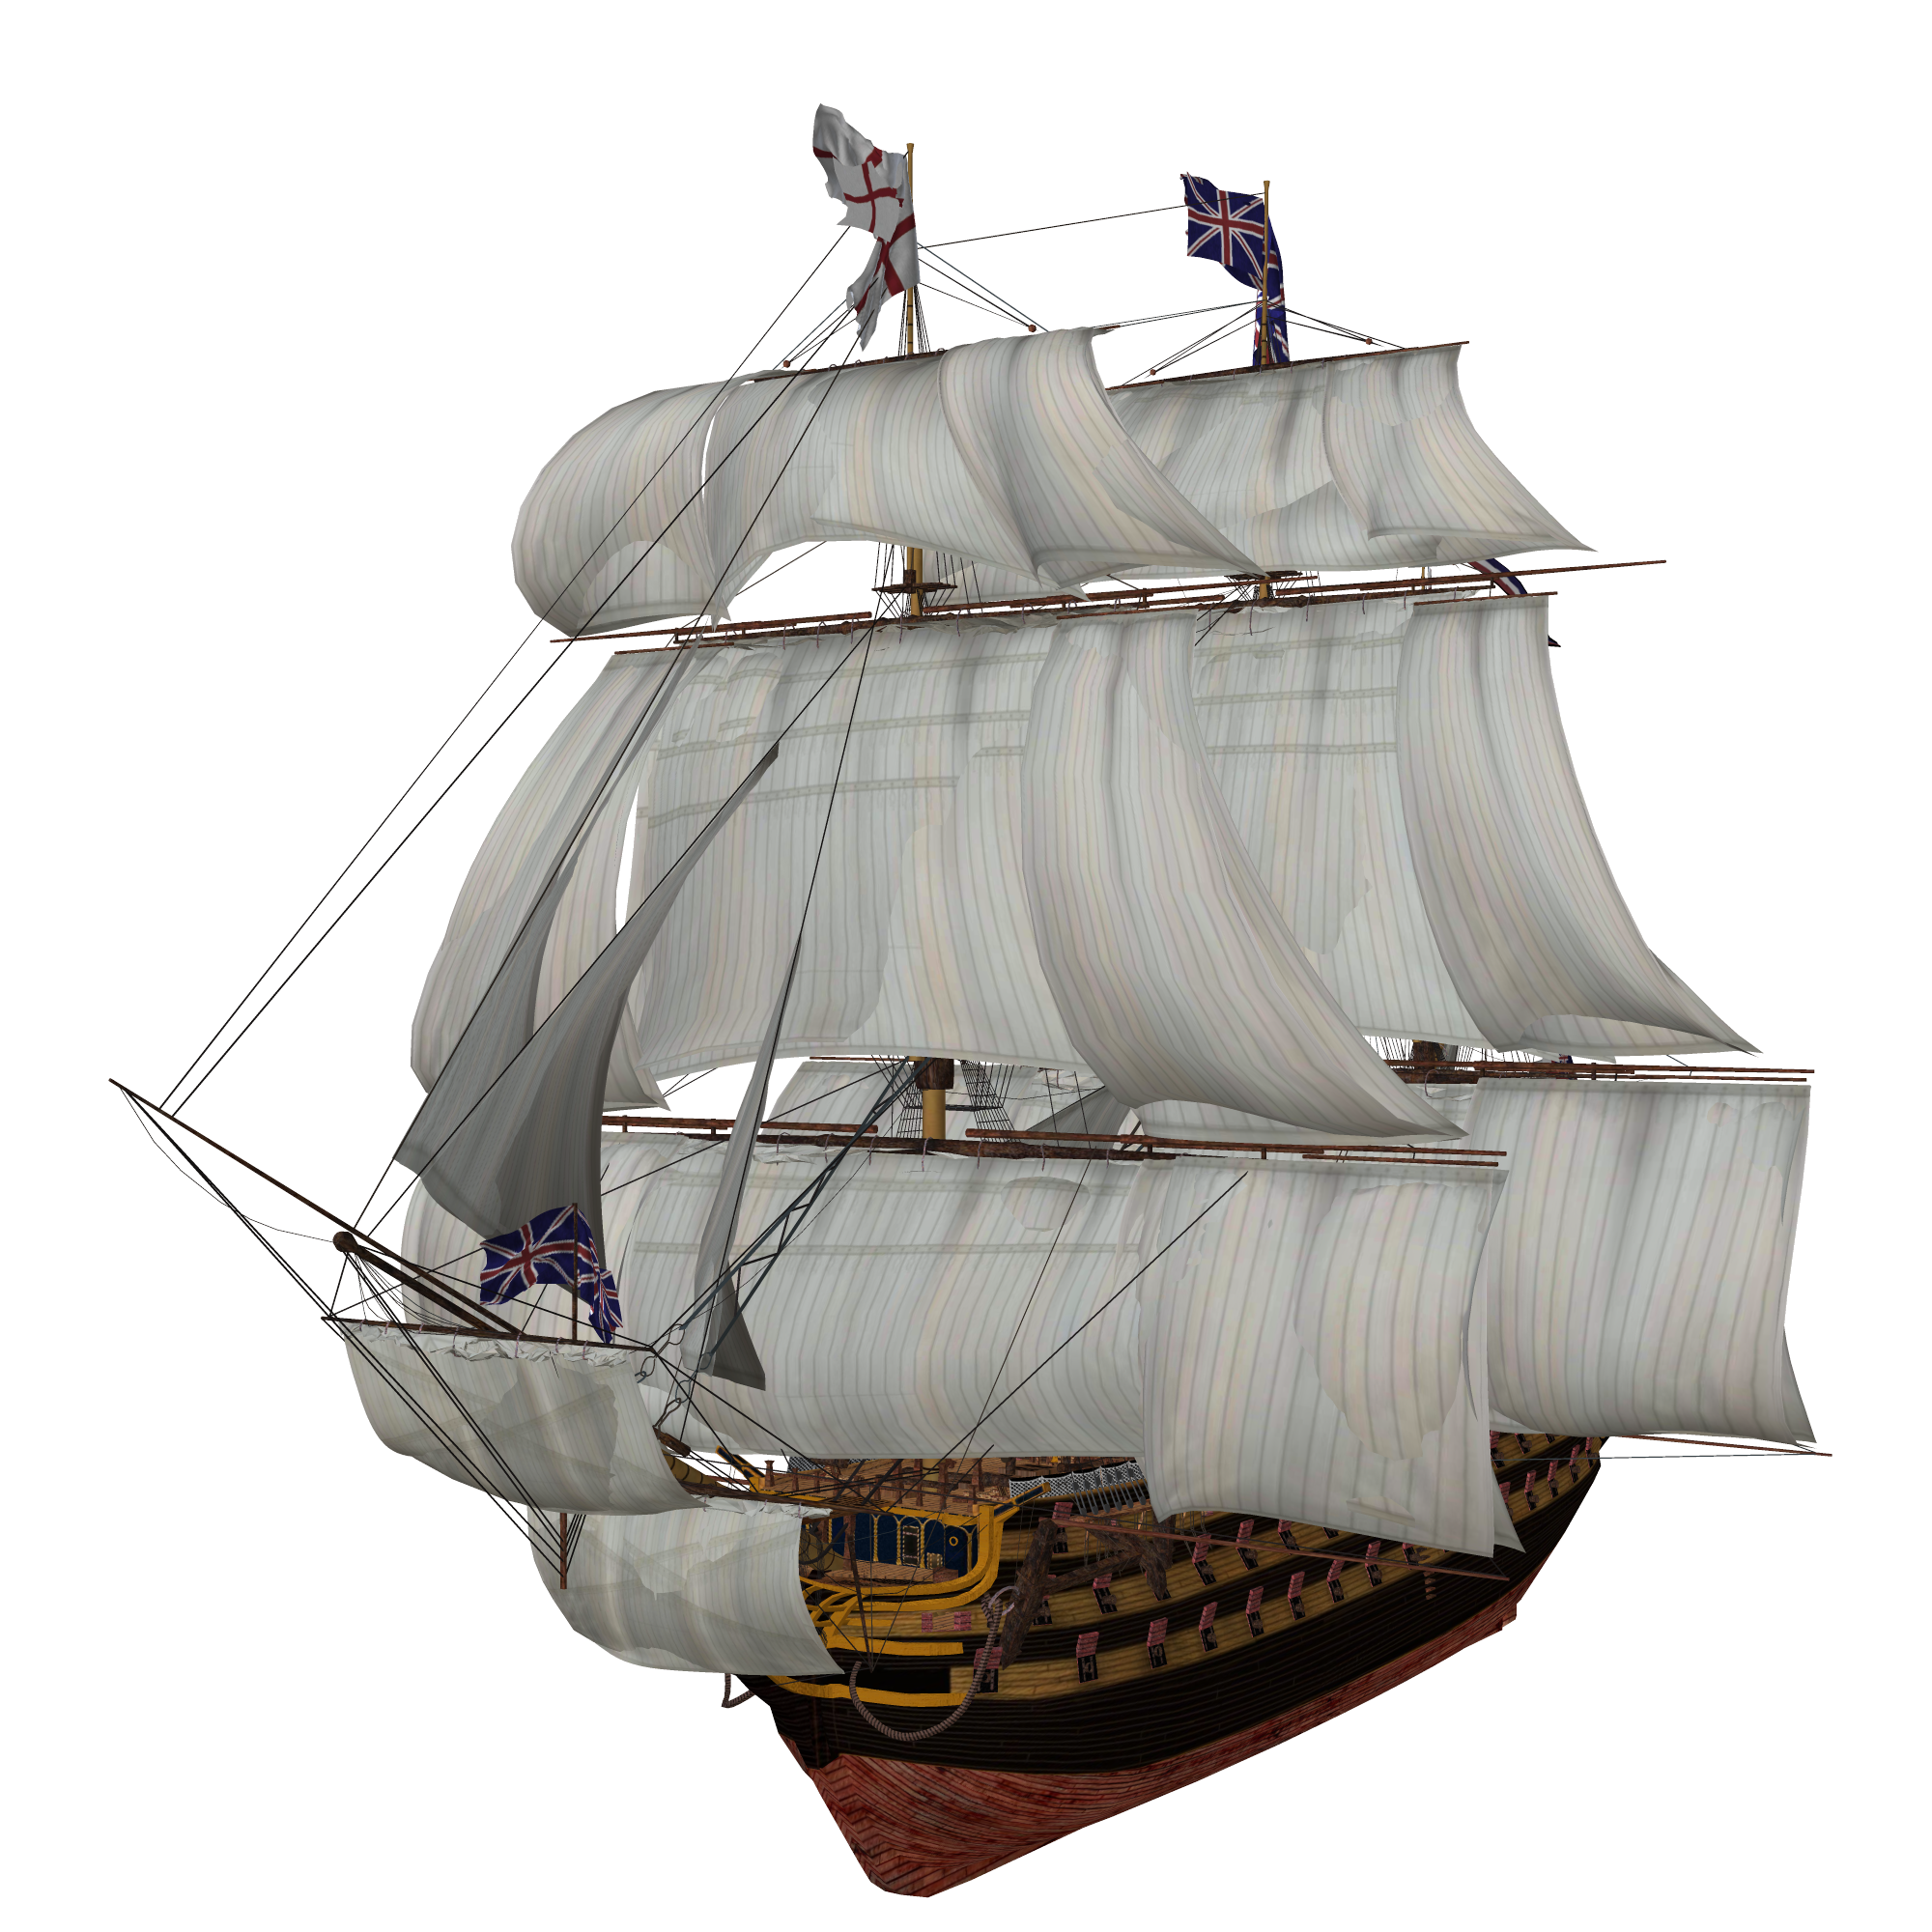 Big ship png image. Tall clipart rate